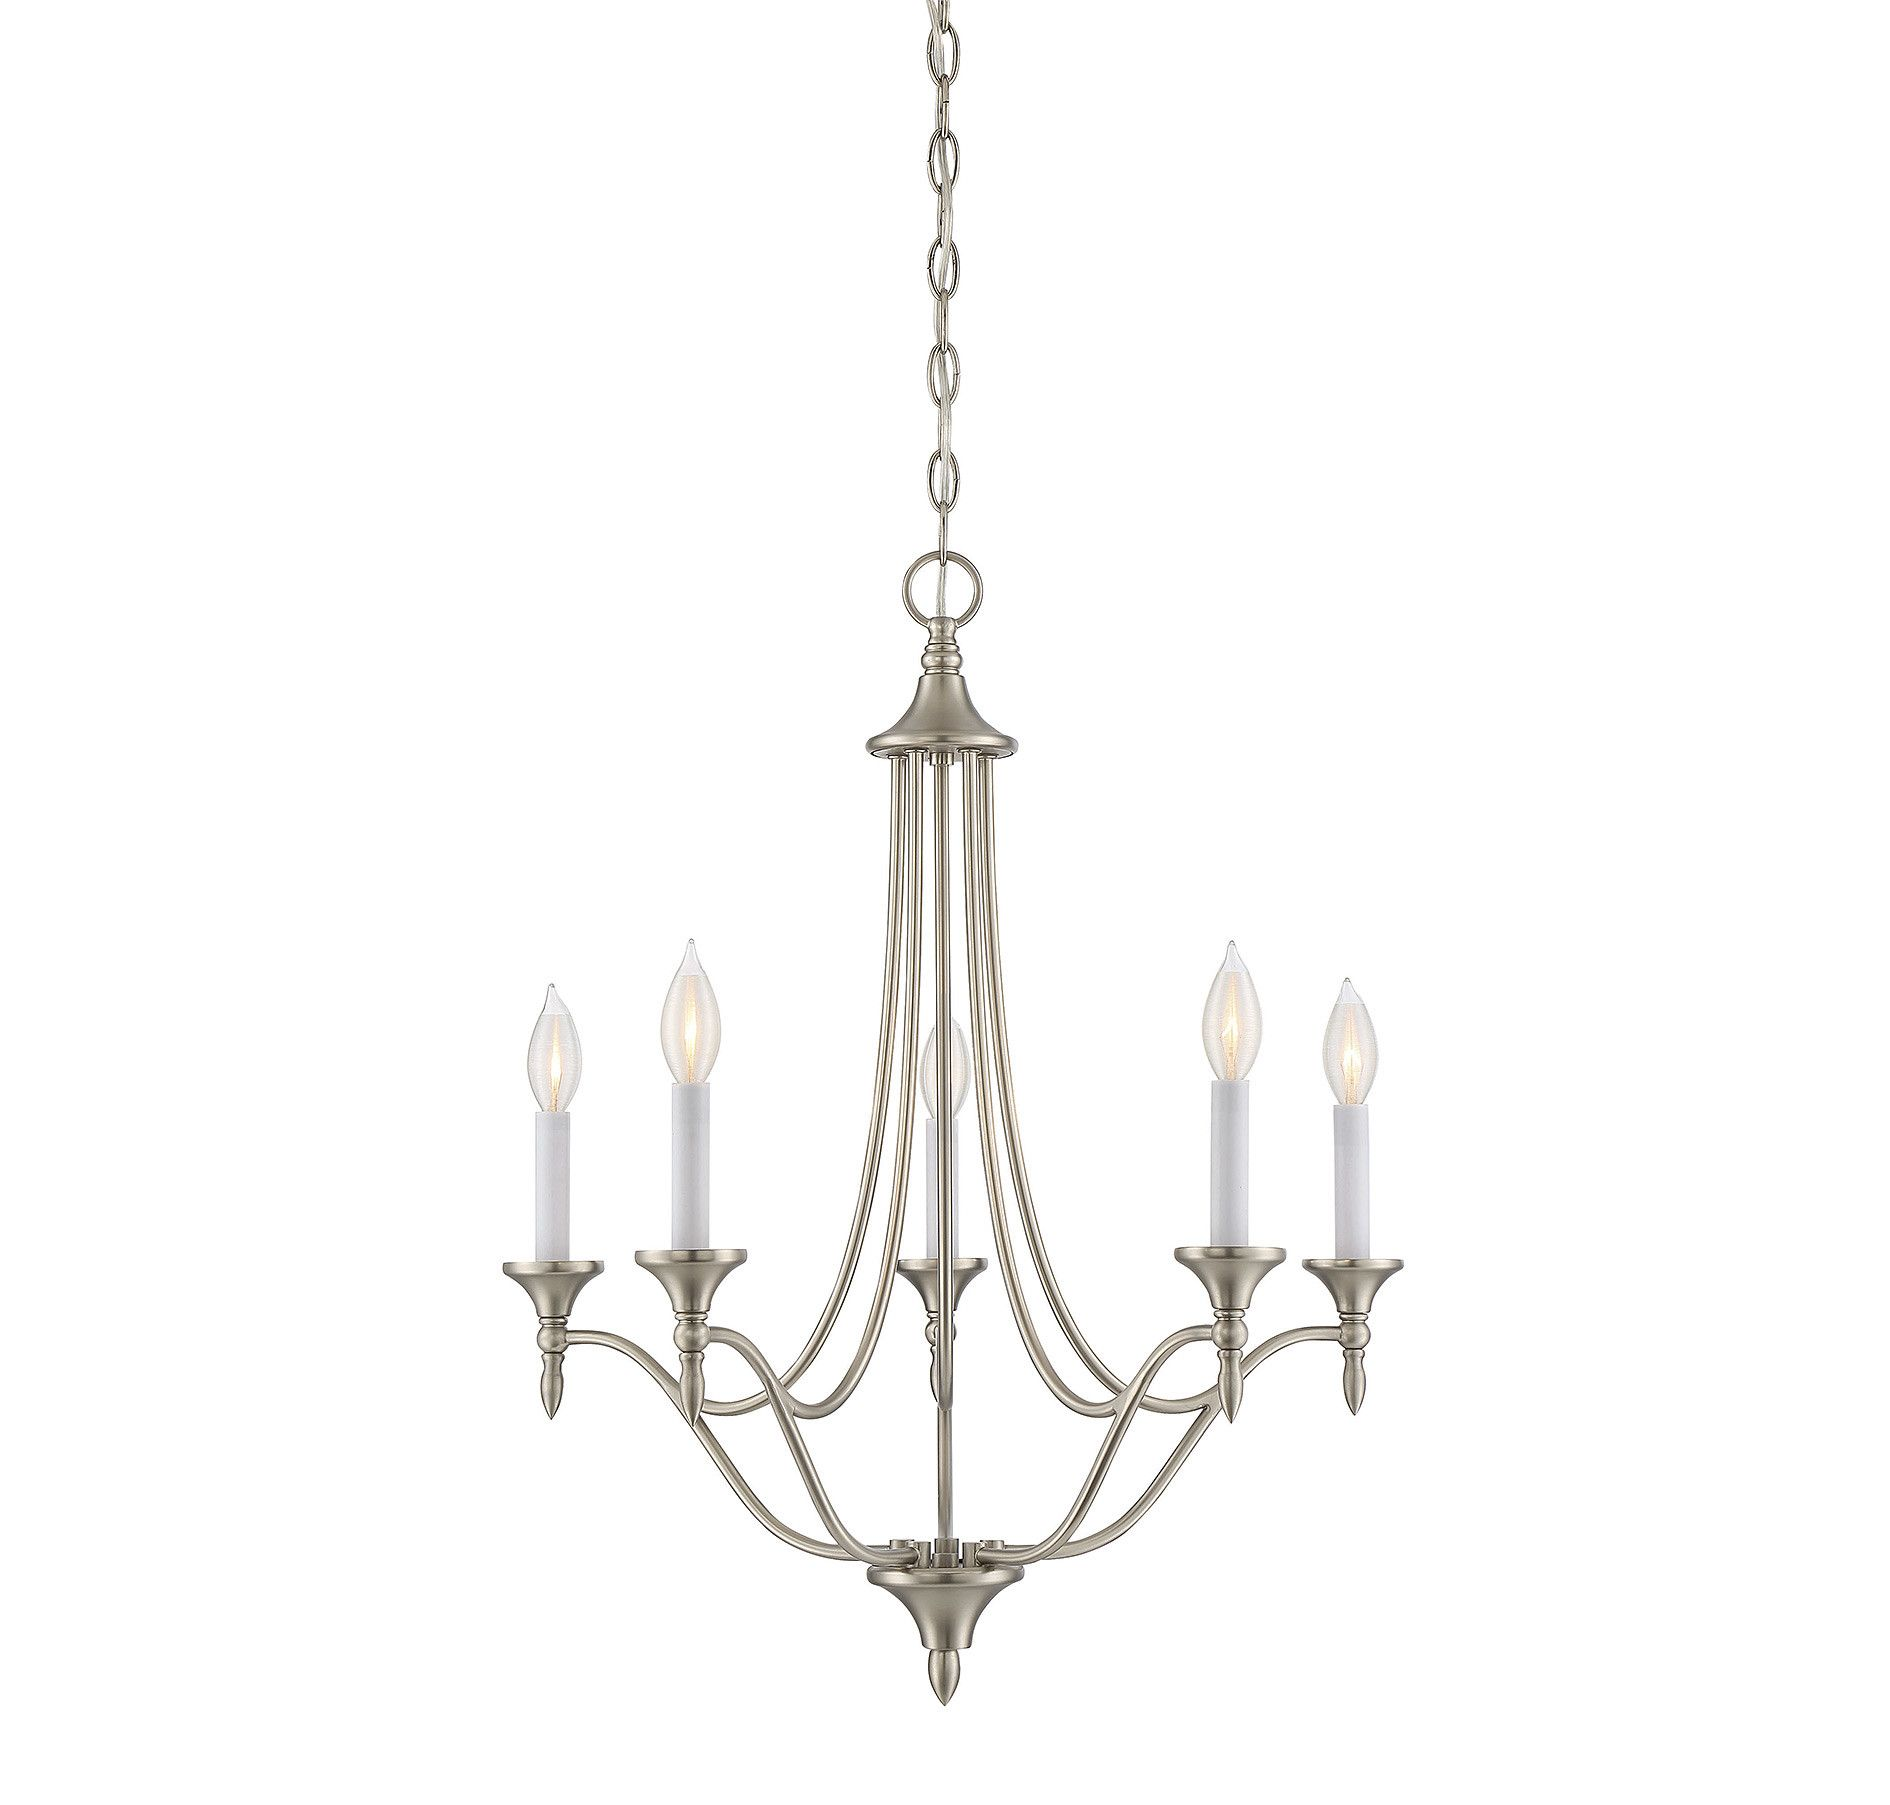 Lovington 5 Light Candle Style Chandelier Dining Room